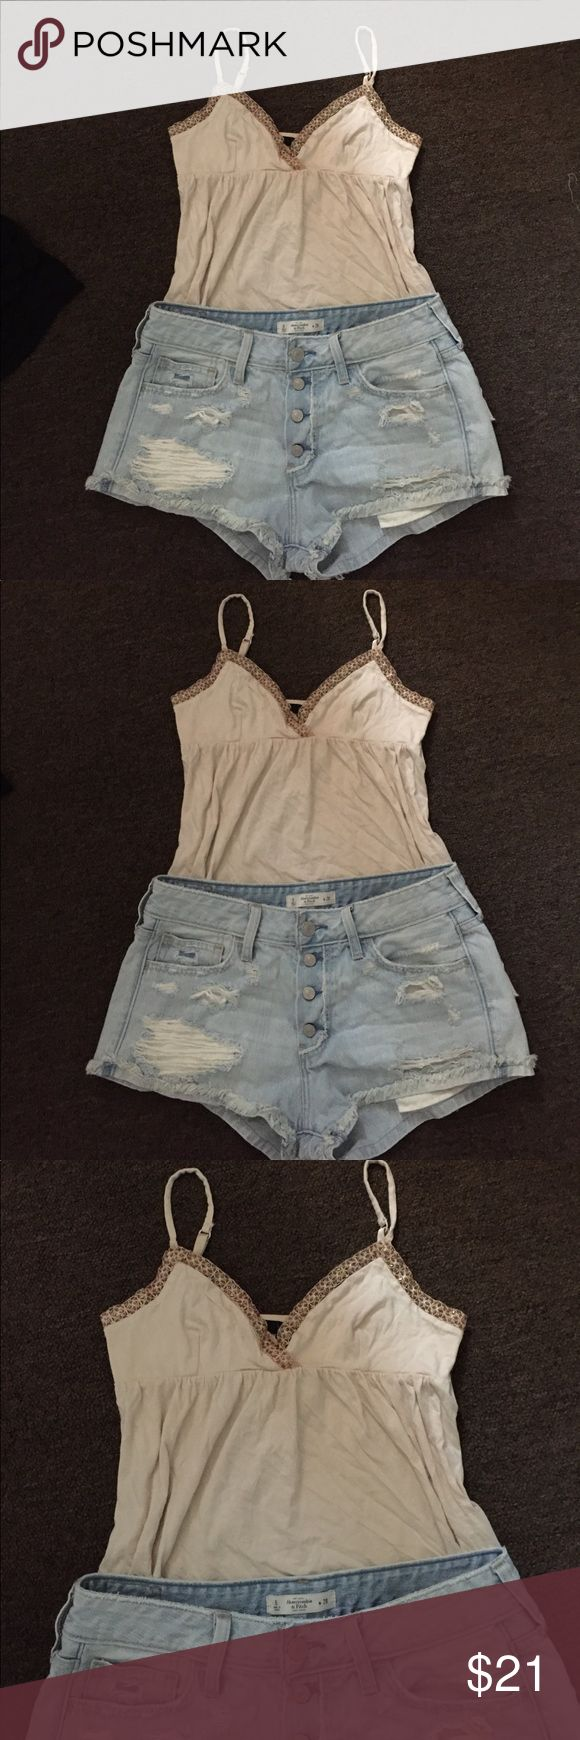 Top and shorts Cute outfit , you get both . Top is by express and distressed shorts are Abercrombie. Everything in my closet is in great condition. 👌🏻 Abercrombie & Fitch Tops Tank Tops